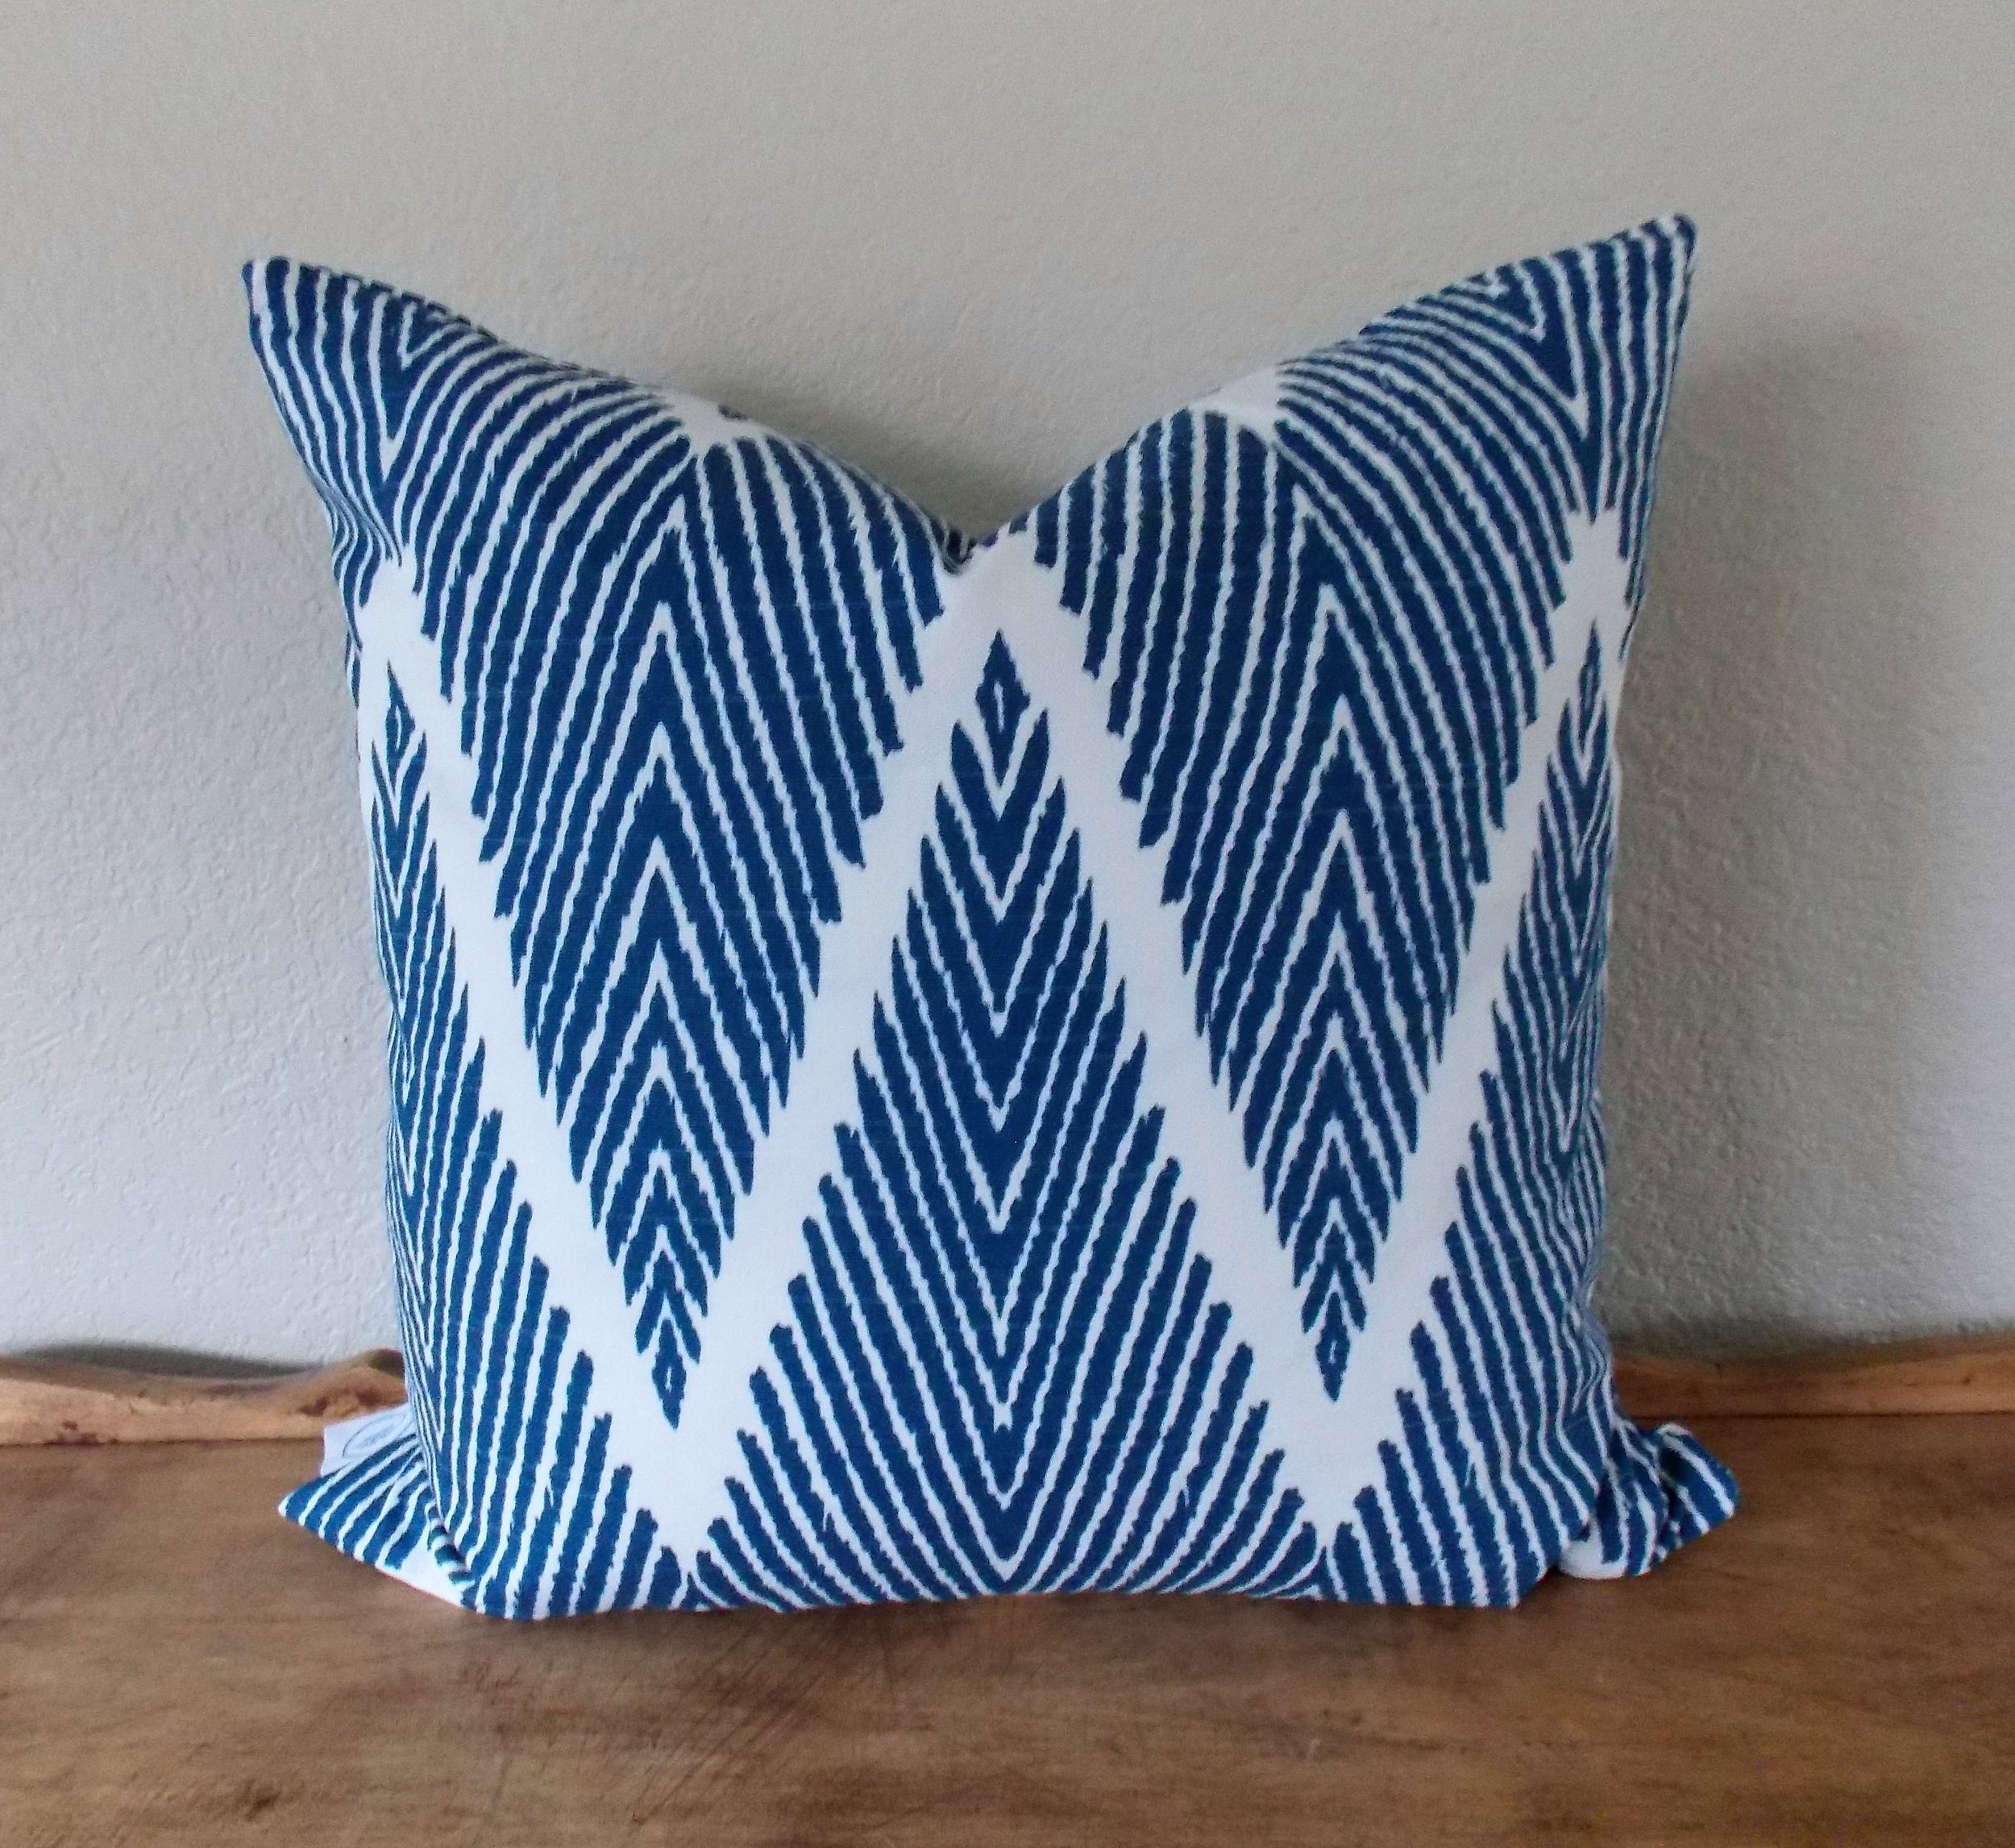 "Chevron - Bold chevron pattern on sturdy cotton. Constructed with an invisible zipper. Wash and dry medium.18"" x 18"" - $43Colors: royal blue/white"